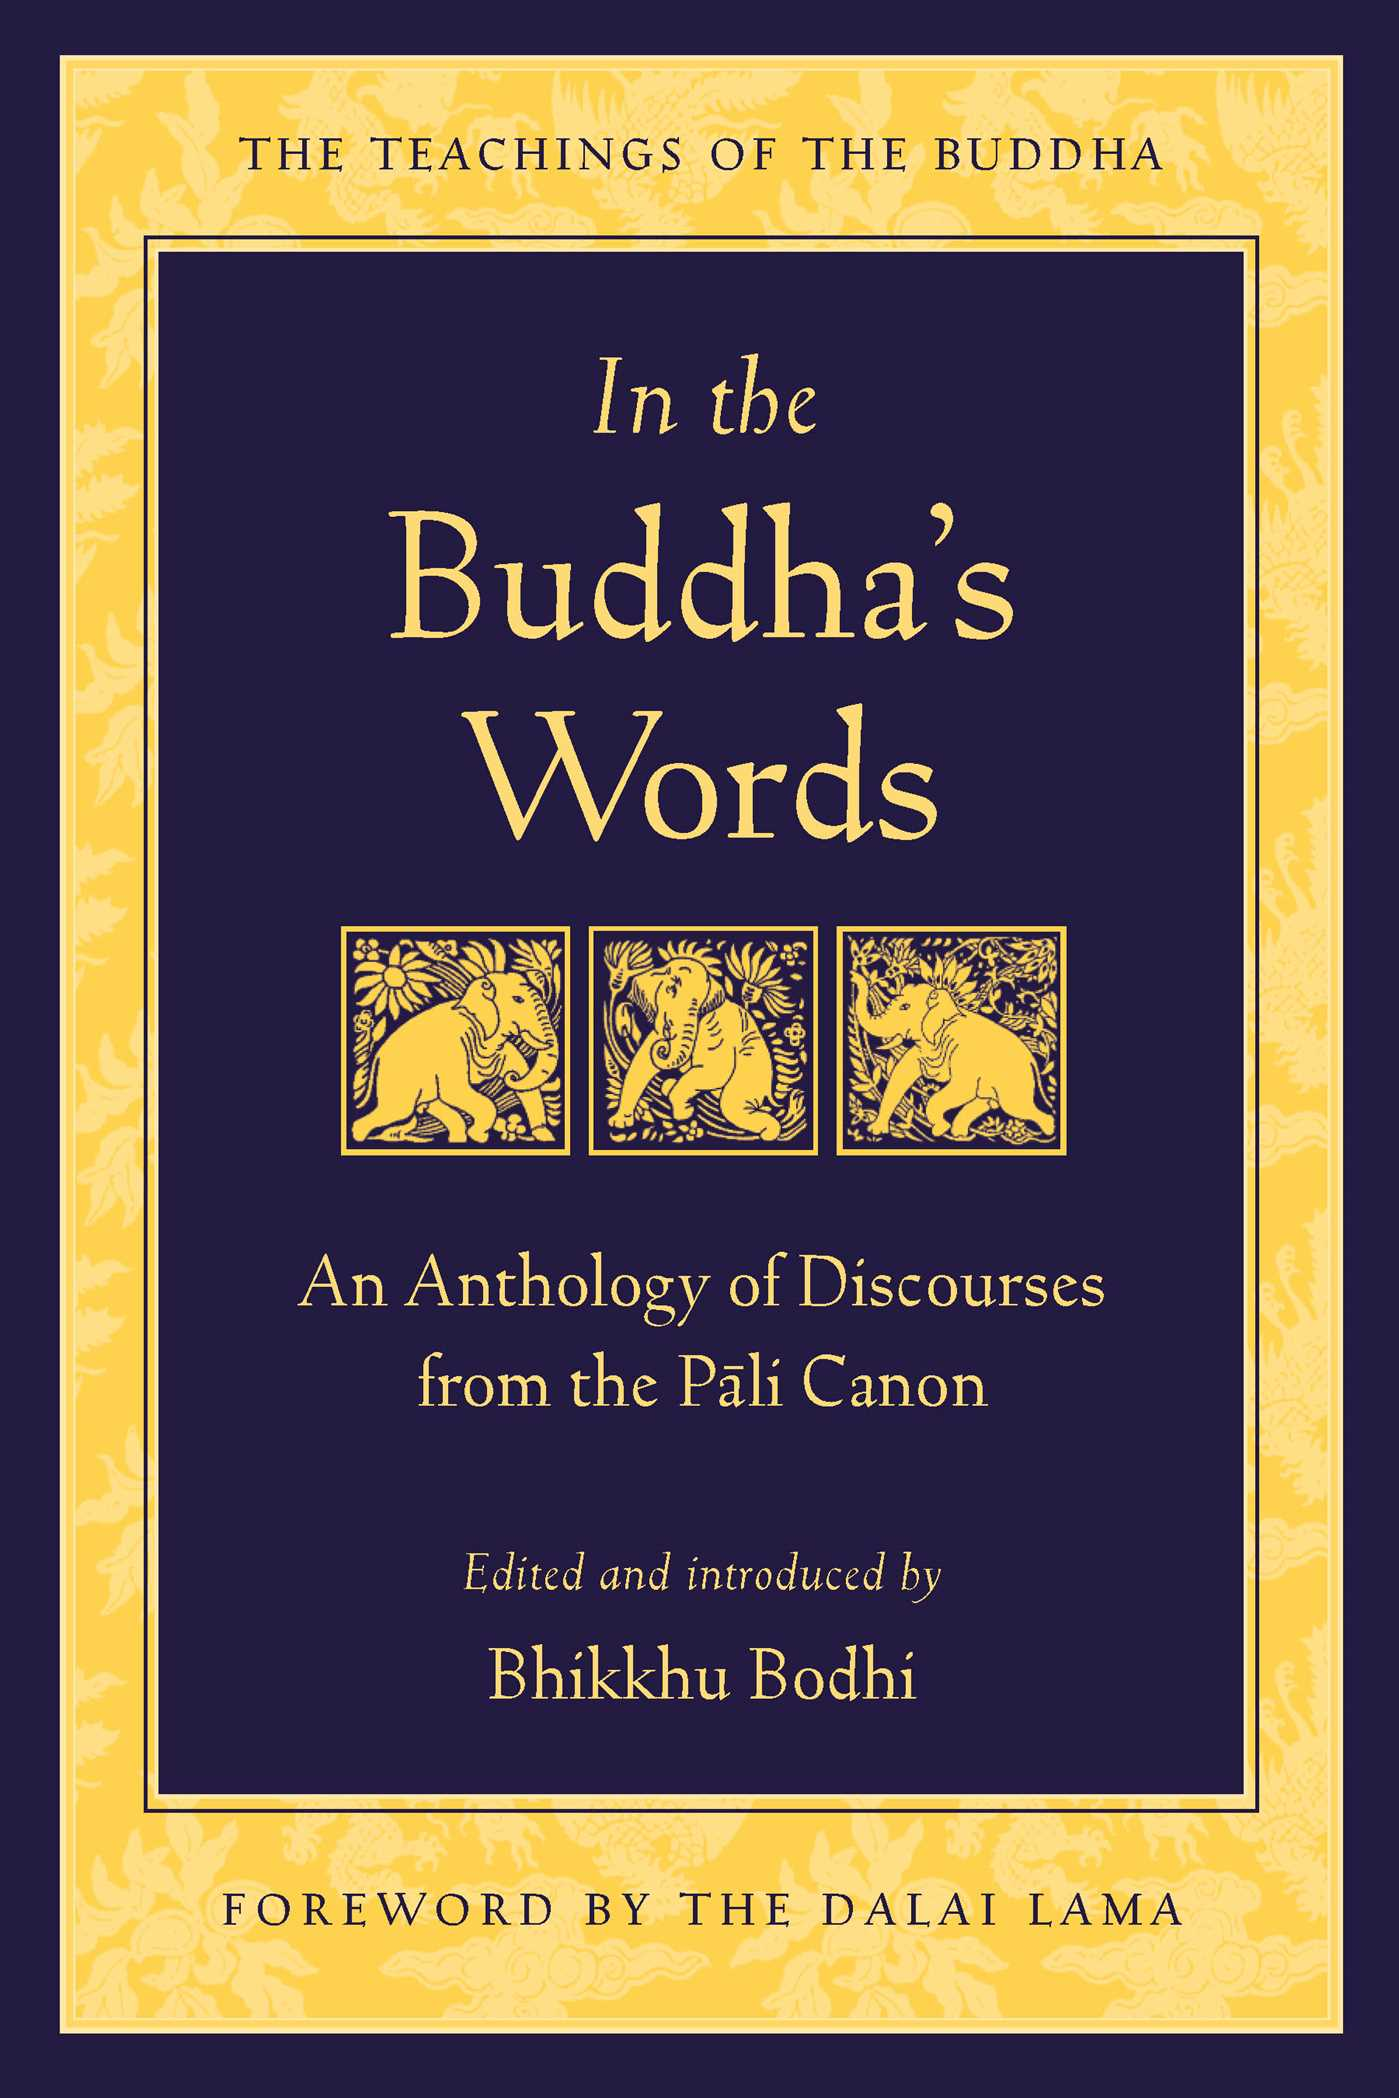 In-the-buddhas-words-9780861714919_hr